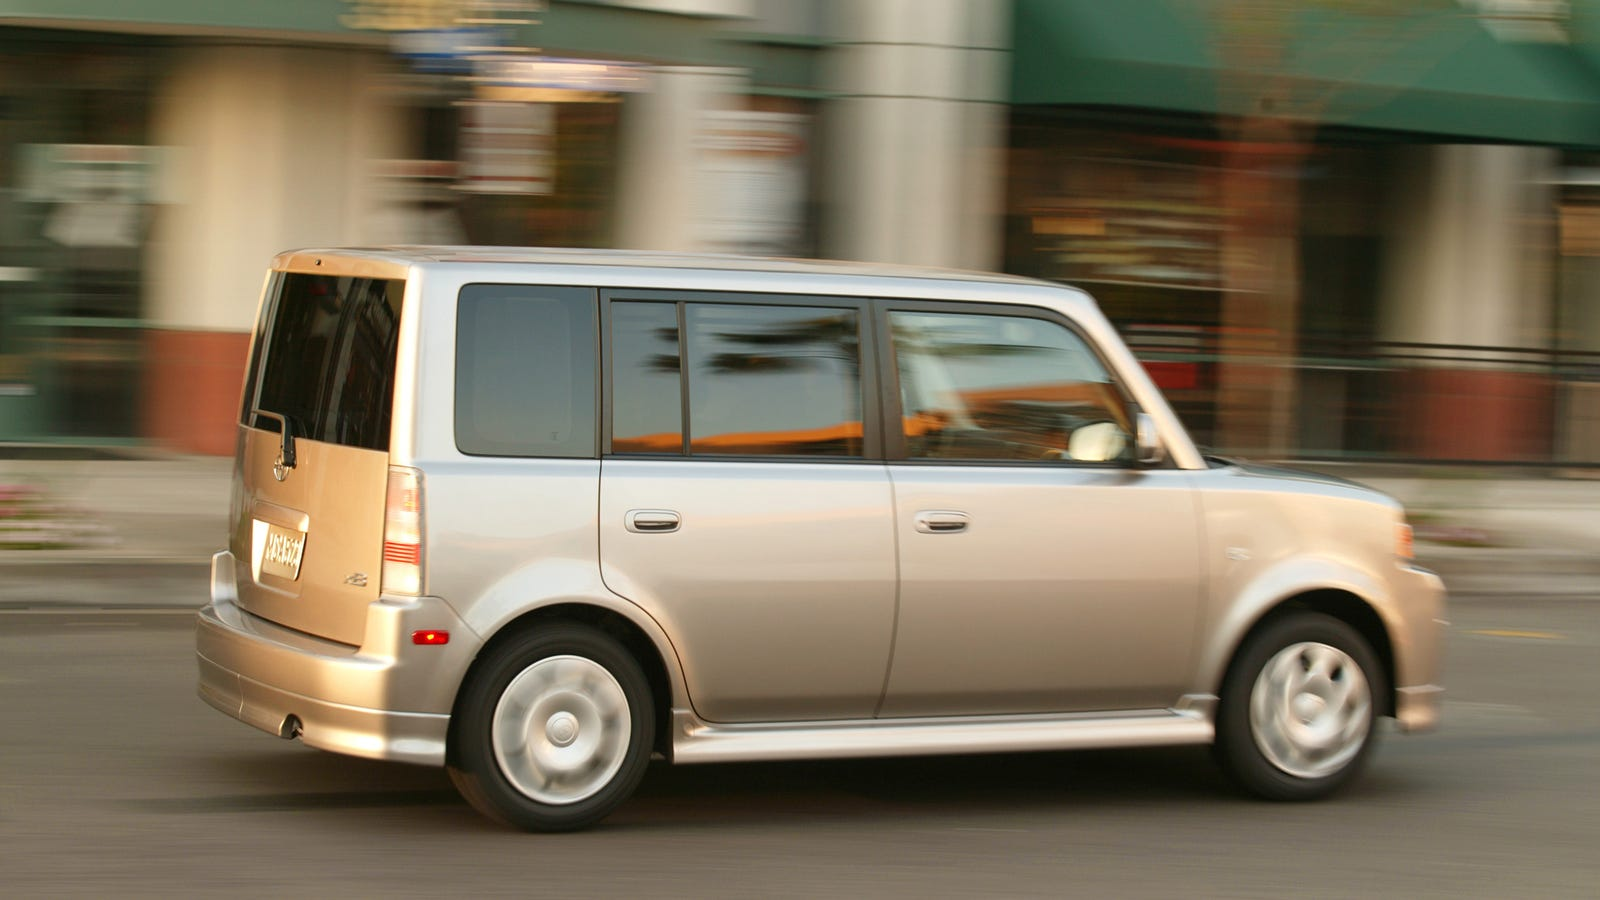 Comment Of The Day: Requiem For The Scion xB Edition